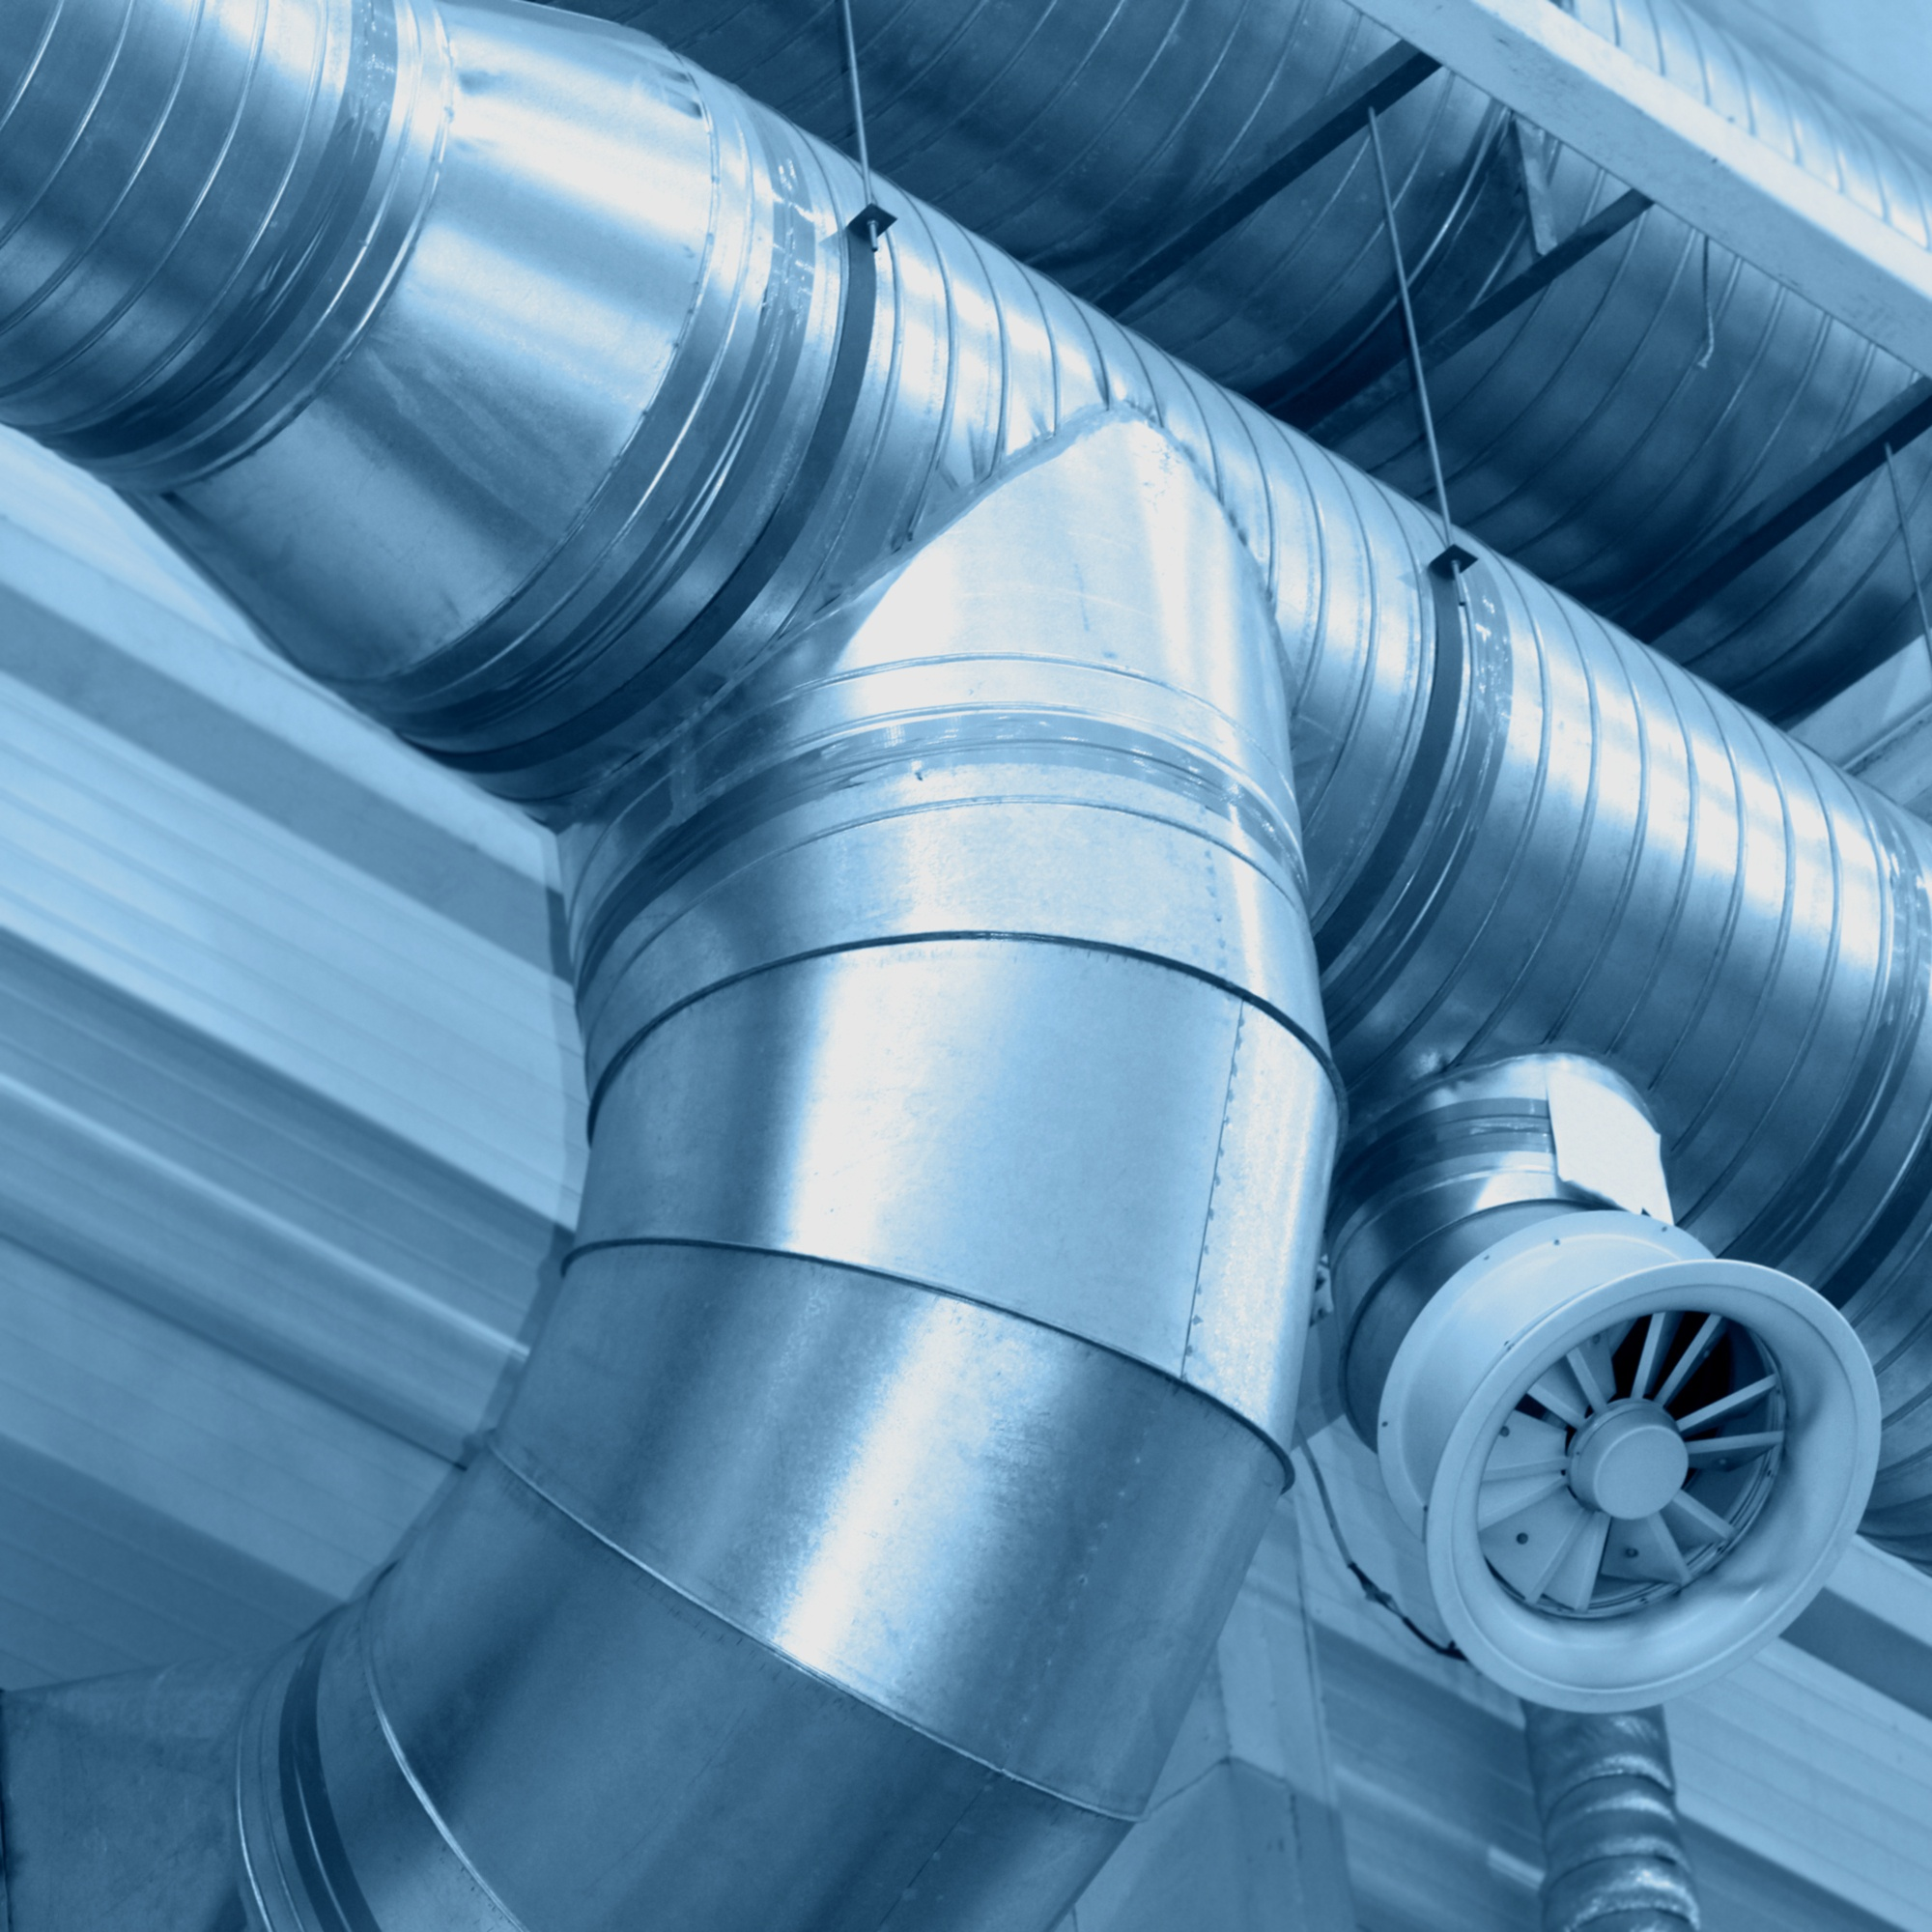 Learn what questions to ask to choose the best Relative Humidity sensor.